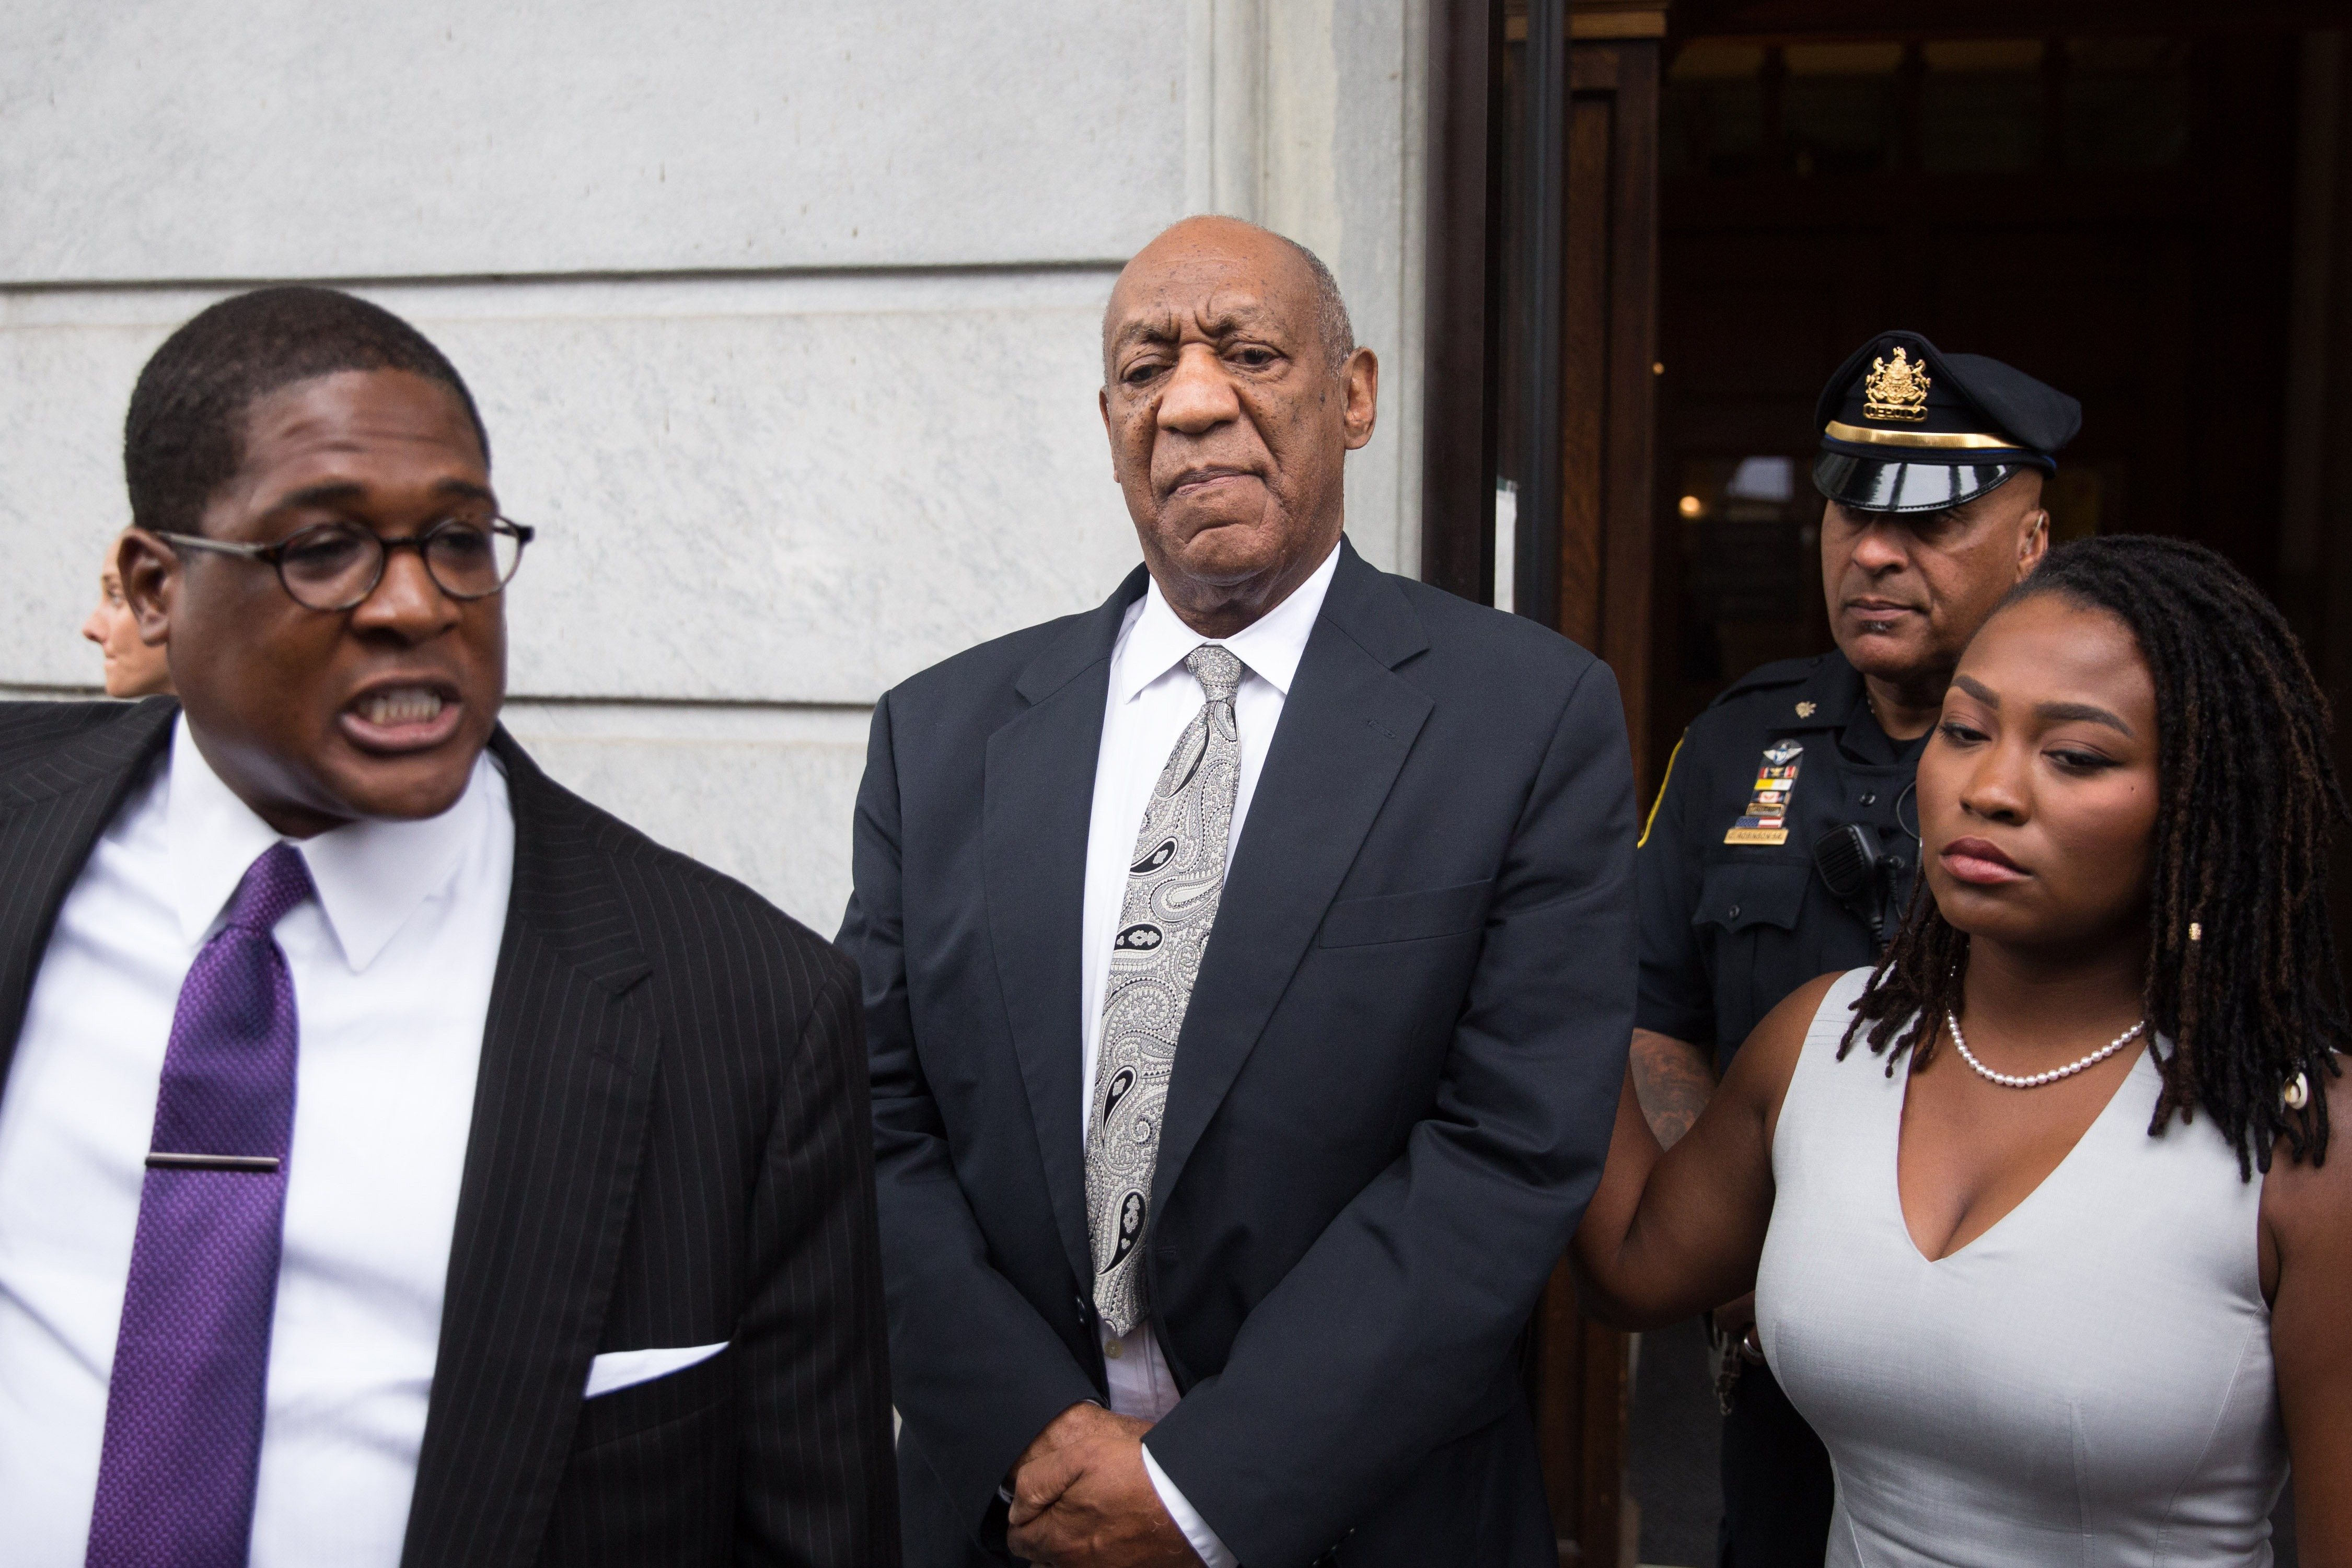 Actor and comedian Bill Cosby looks on as his publicist Andrew Wyatt addresses the media outside the Montgomery County Courthouse on June 17, 2017 in Norristown, Pennsylvania. After 52 hours of deliberation, a mistrial was announced in Cosby's sexual assault trial. (Photo by Kevin Hagen/Getty Images)